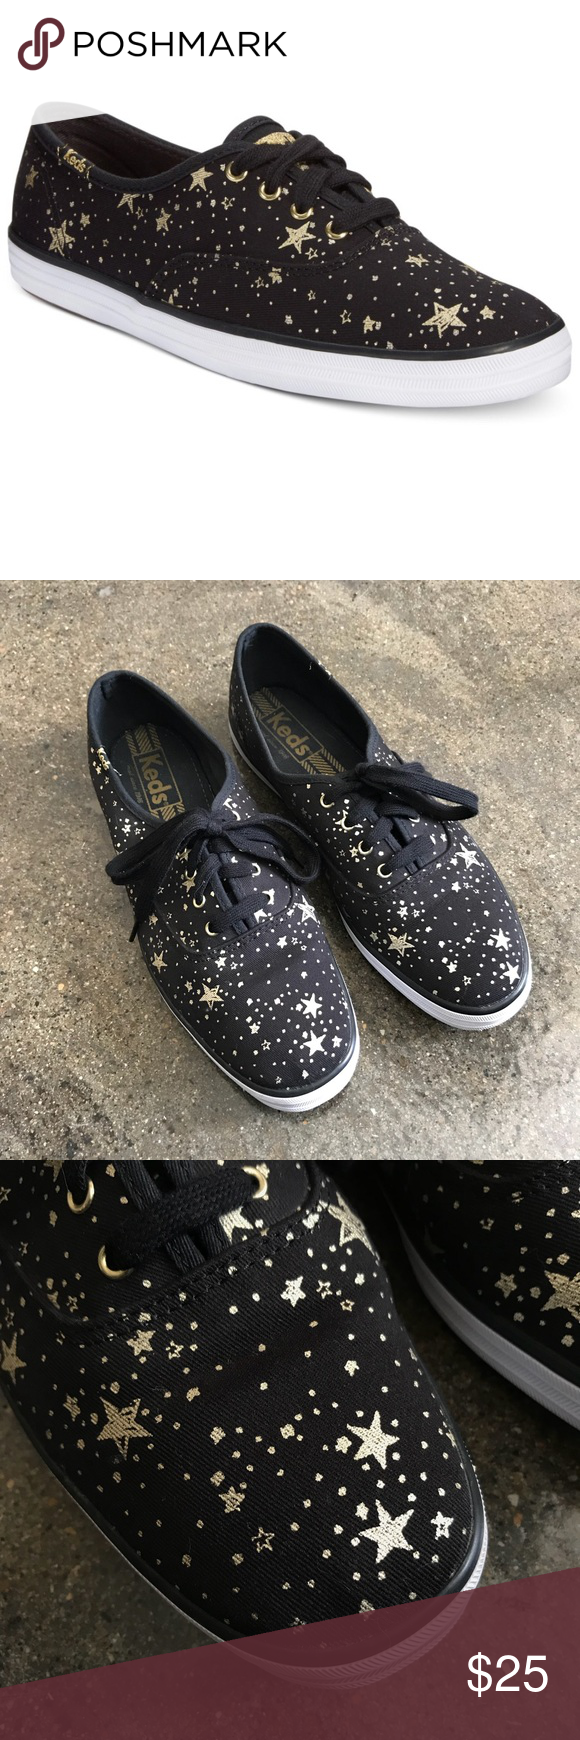 a12a0e5fa4b Keds Champion Celestial Sneakers Black Gold Star Great preowned condition. Keds  Shoes Sneakers